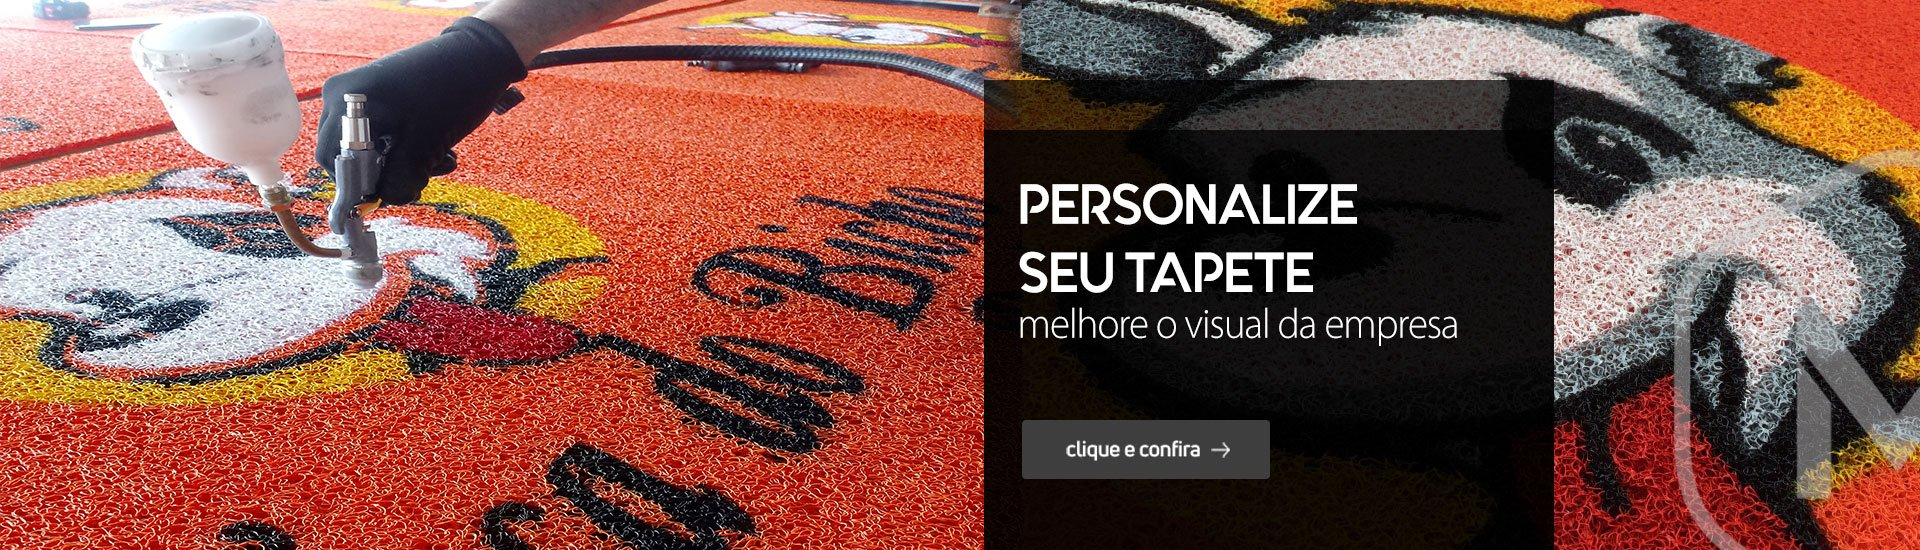 FULLBANNER PERSONALIZE